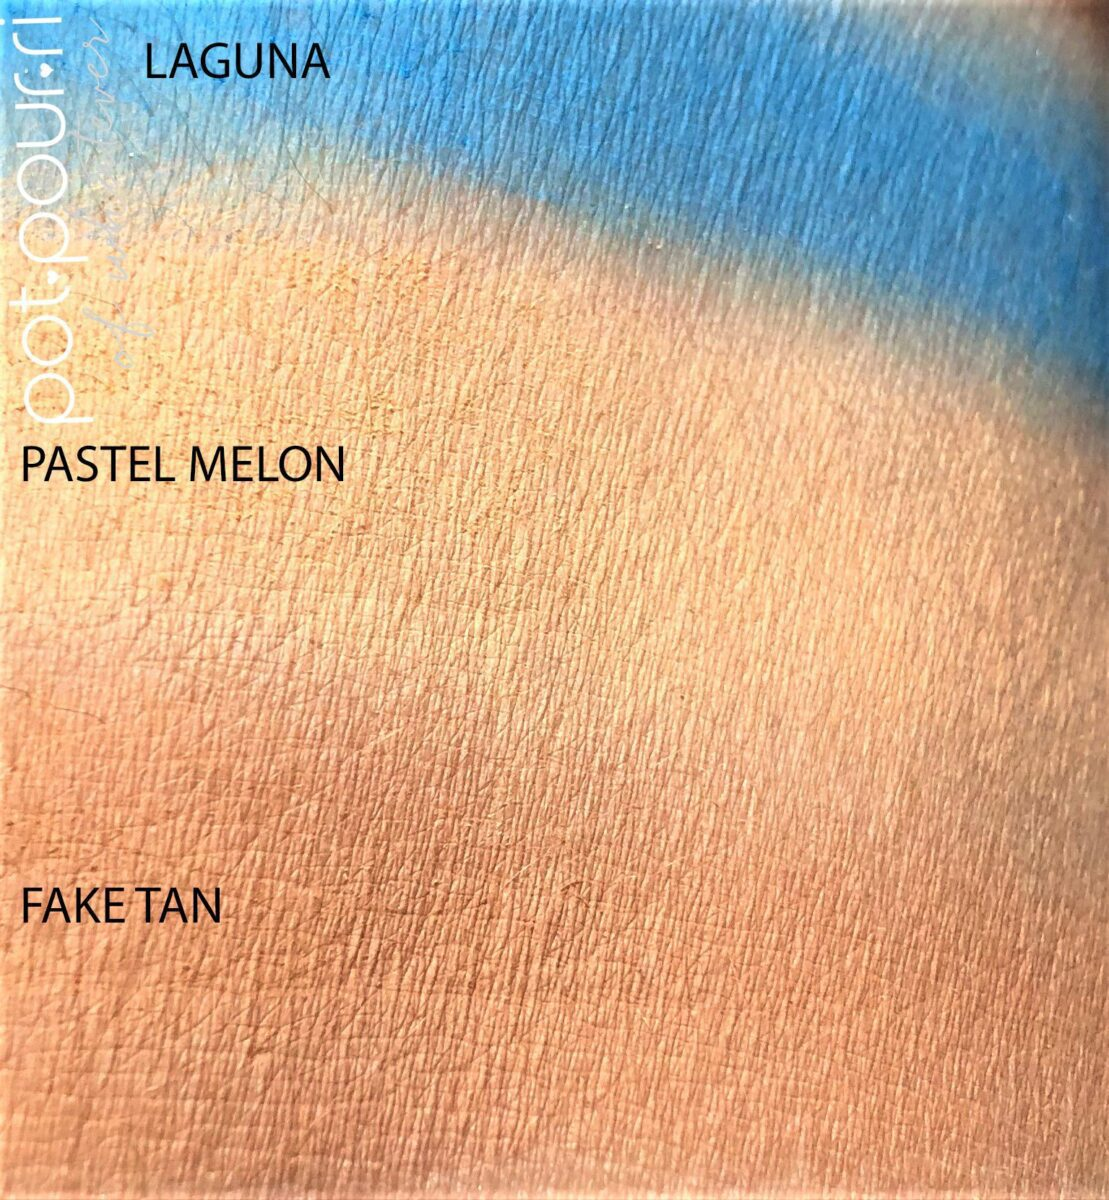 SWATCHES FAKE TAN , PASTEL MELON AND LAGUNA